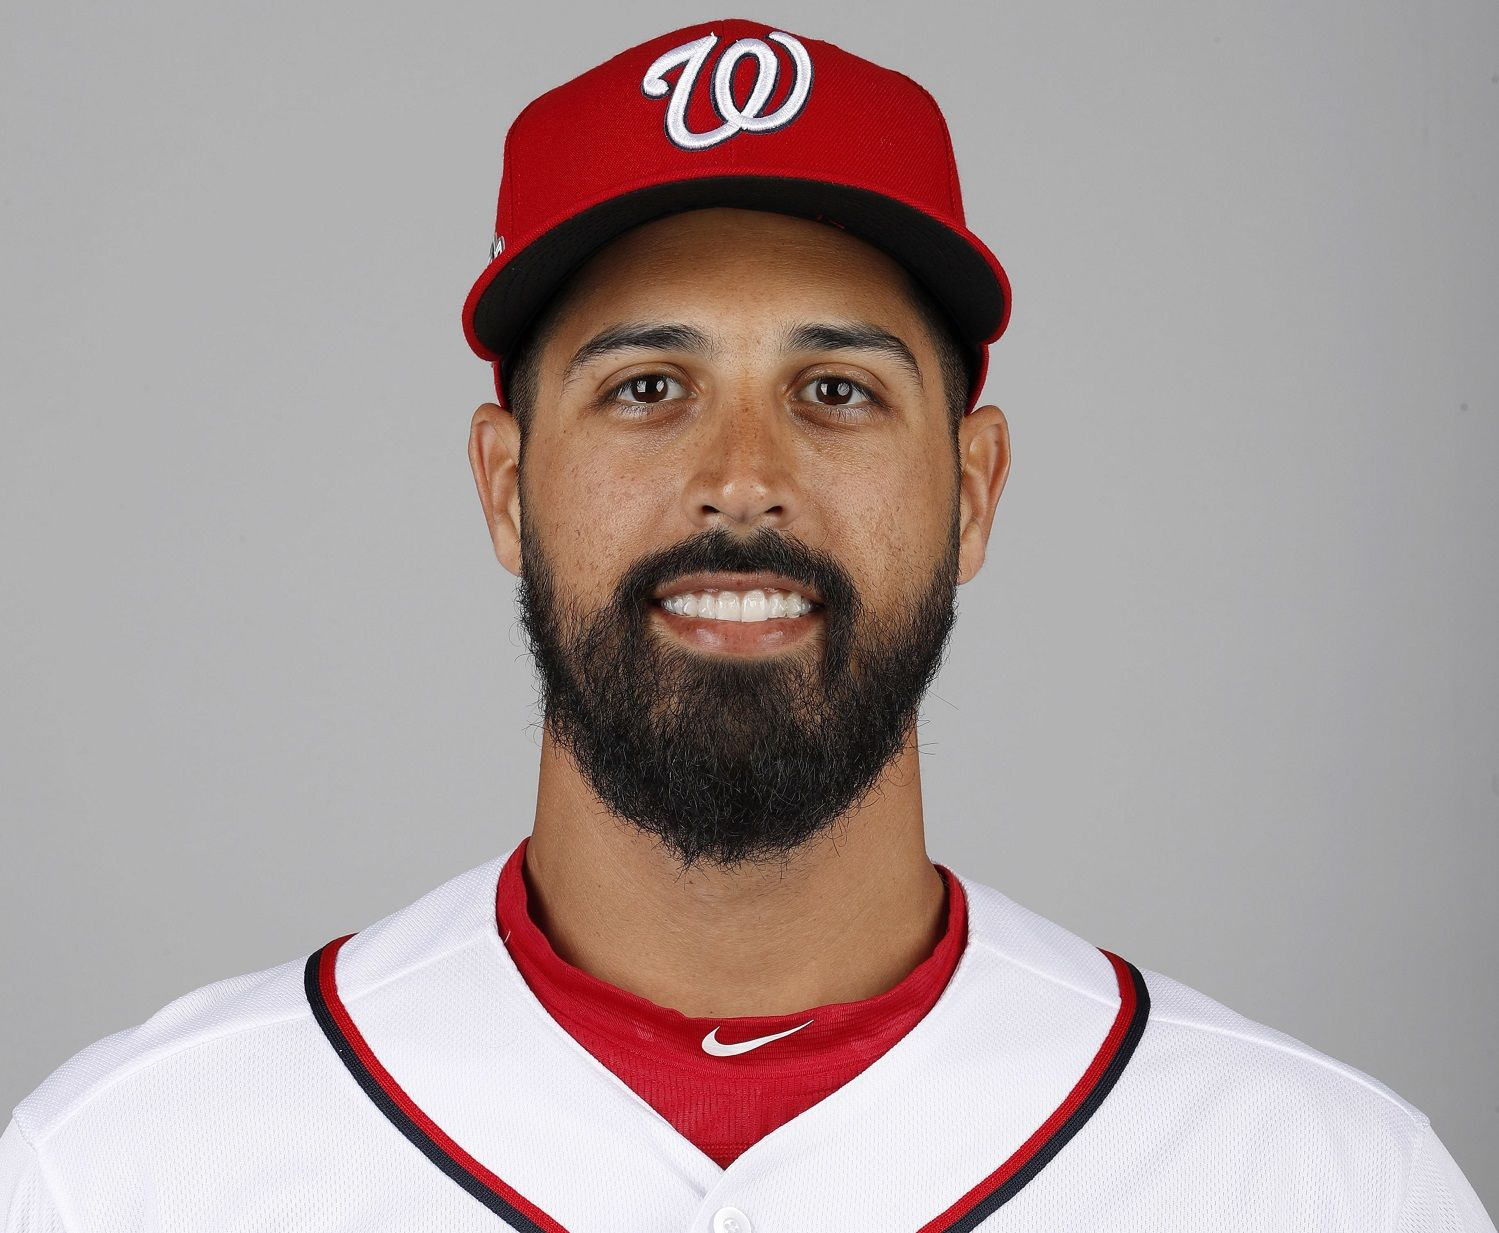 This is a 2018 photo of Gio Gonzalez of the Washington Nationals baseball team. This image reflects the Nationals active roster as of Feb. 22, 2018 when this image was taken. (AP Photo/Jeff Roberson)